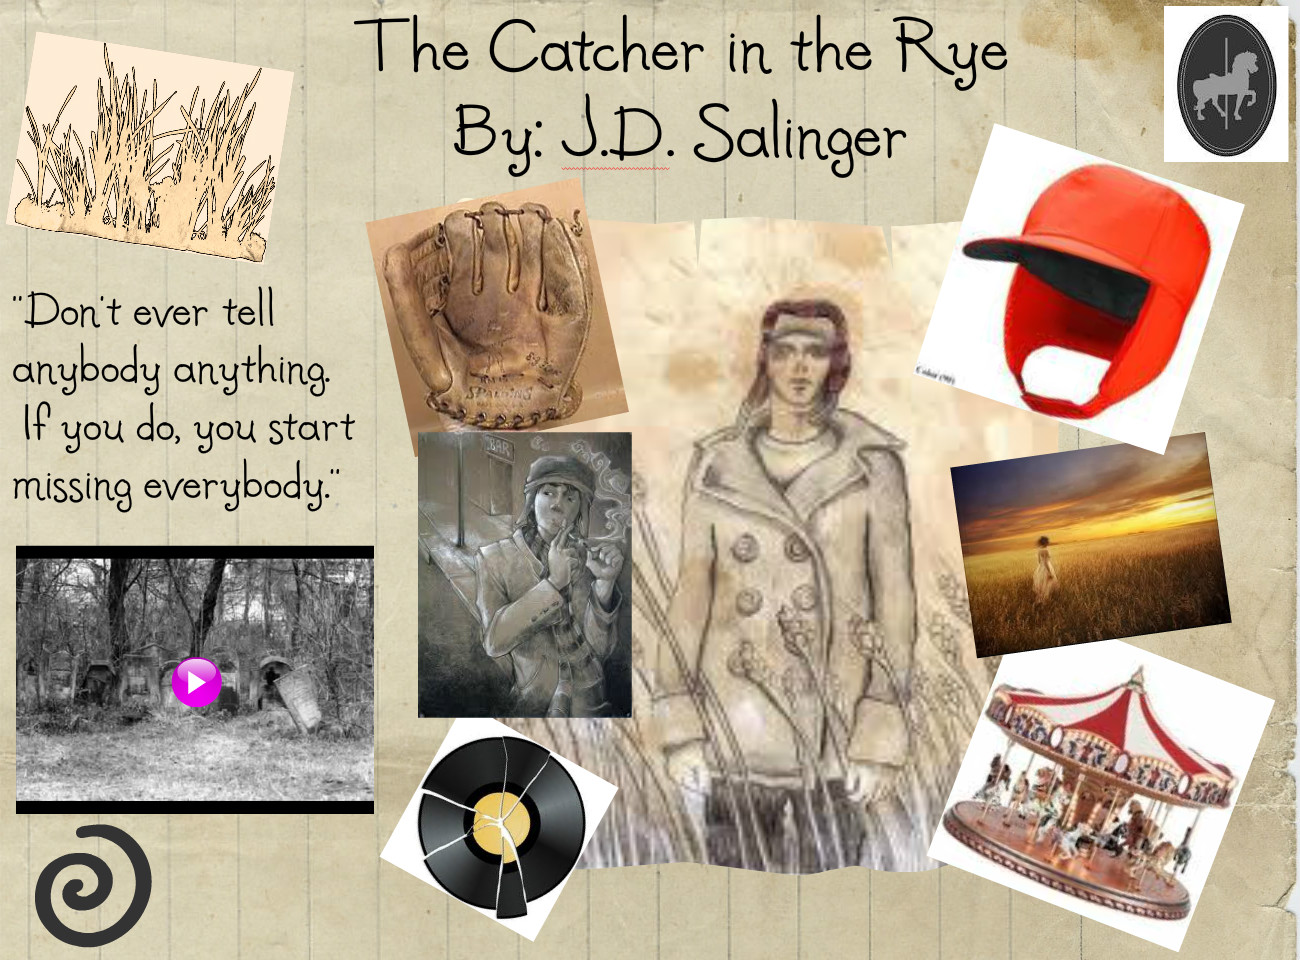 research paper on the catcher in the rye Jd salinger wrote the catcher in the rye in 1951 the story is about an adolescent boy who has many problems, especially fear of change and growing up.